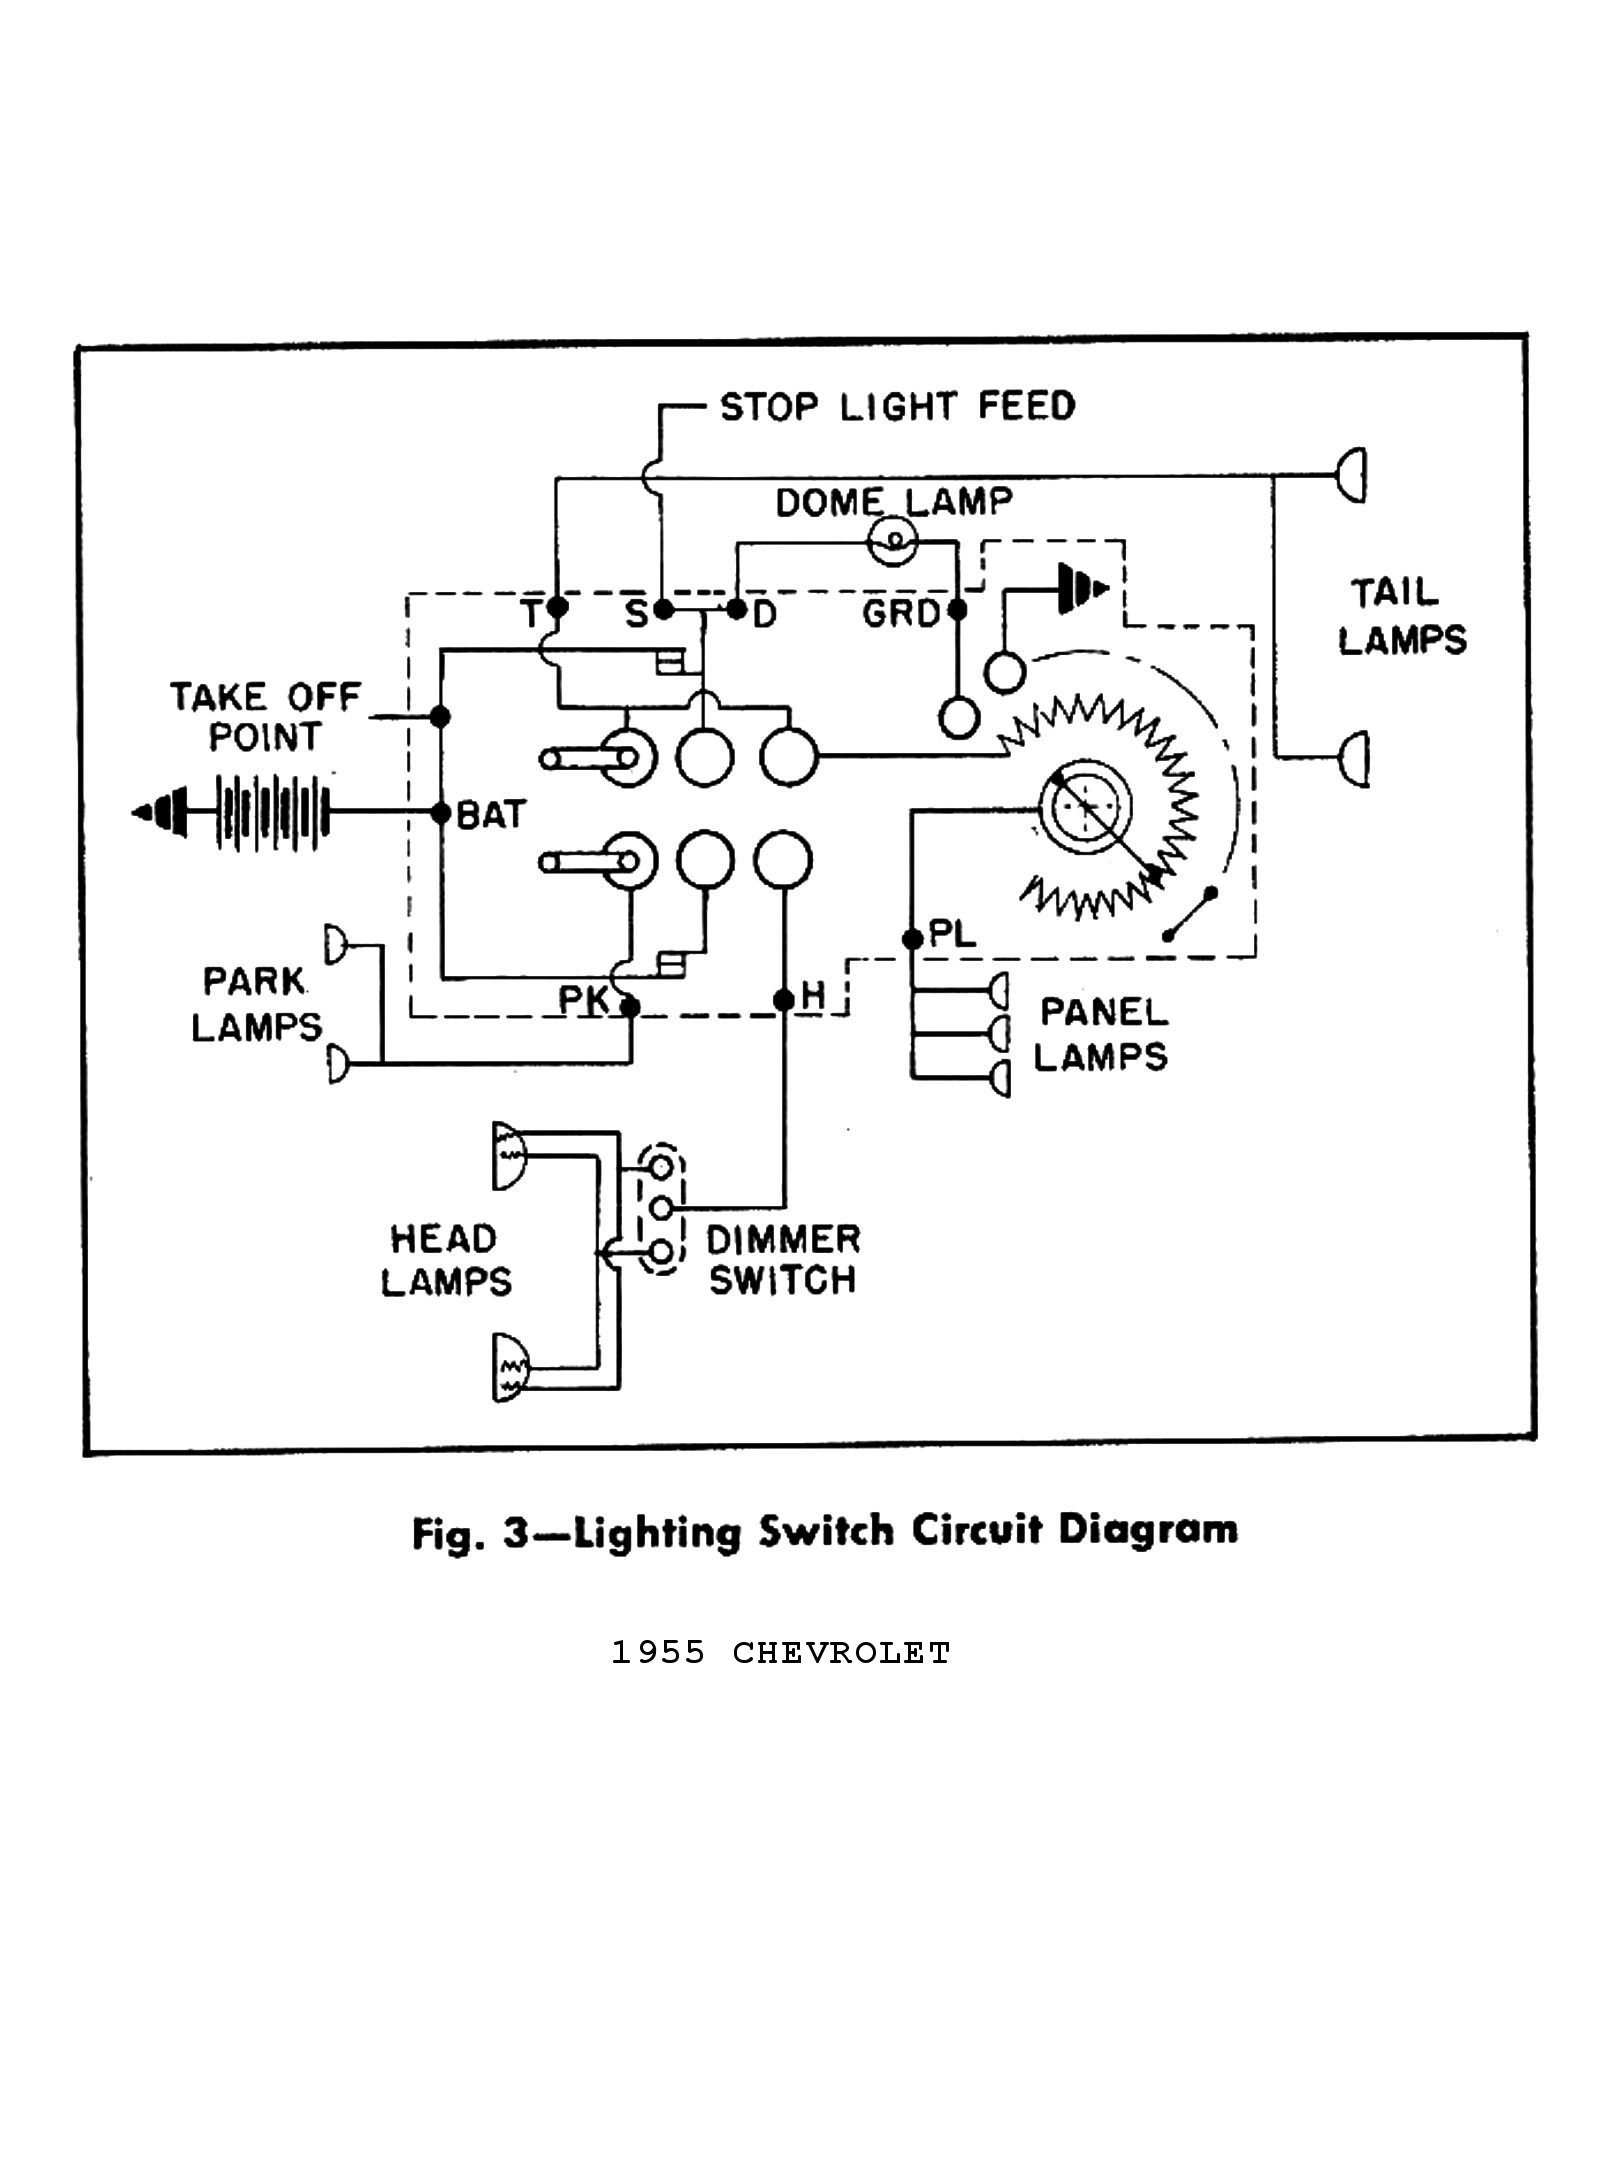 55ctsm1203 chevy wiring diagrams Lutron Dimmer Switch Wiring at soozxer.org